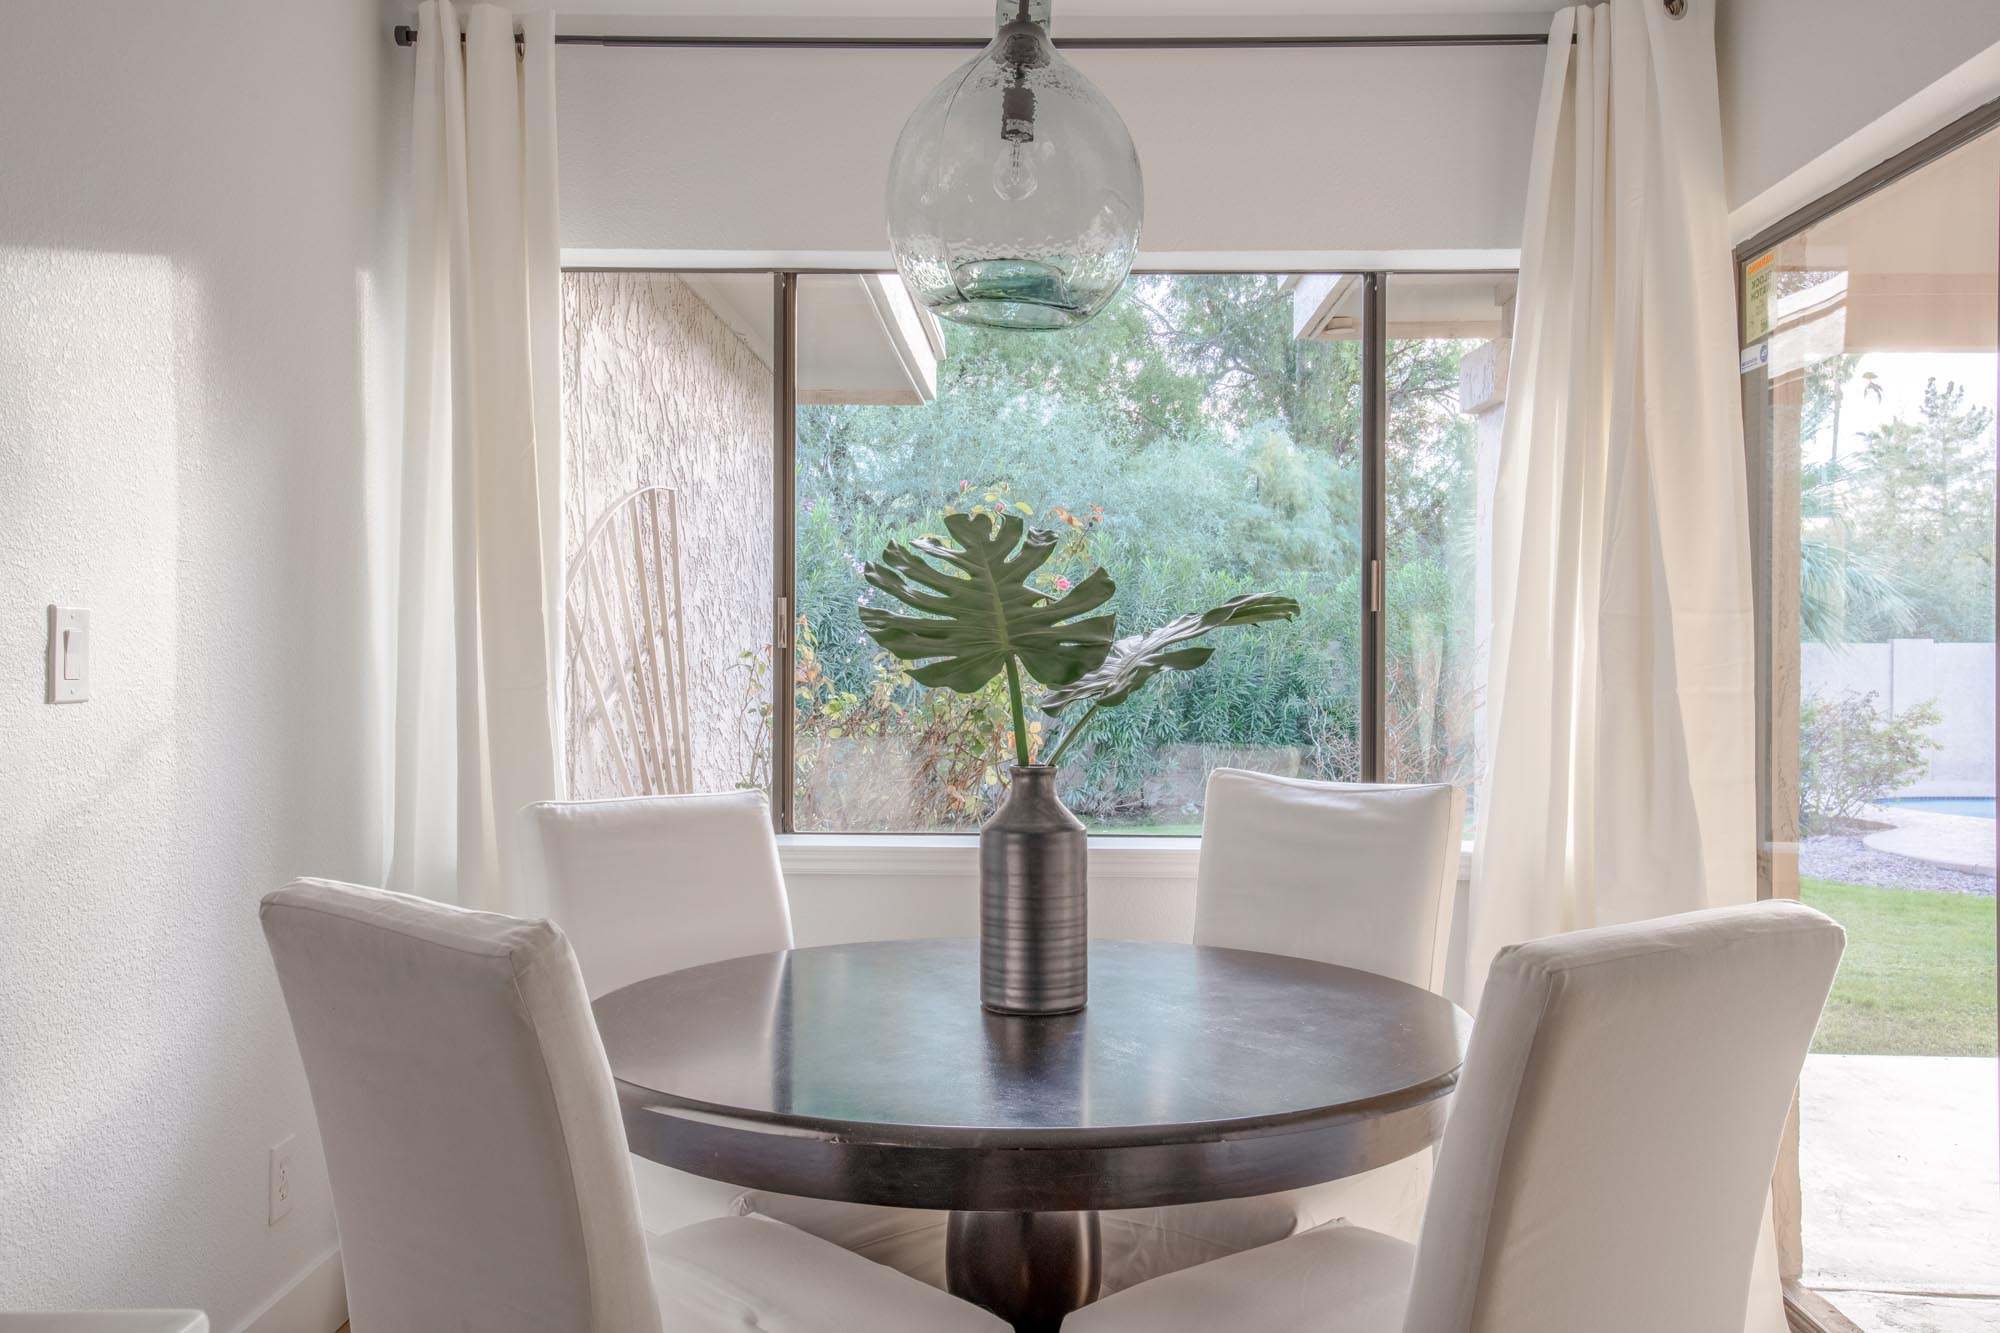 Wooden round table for four with white chairs